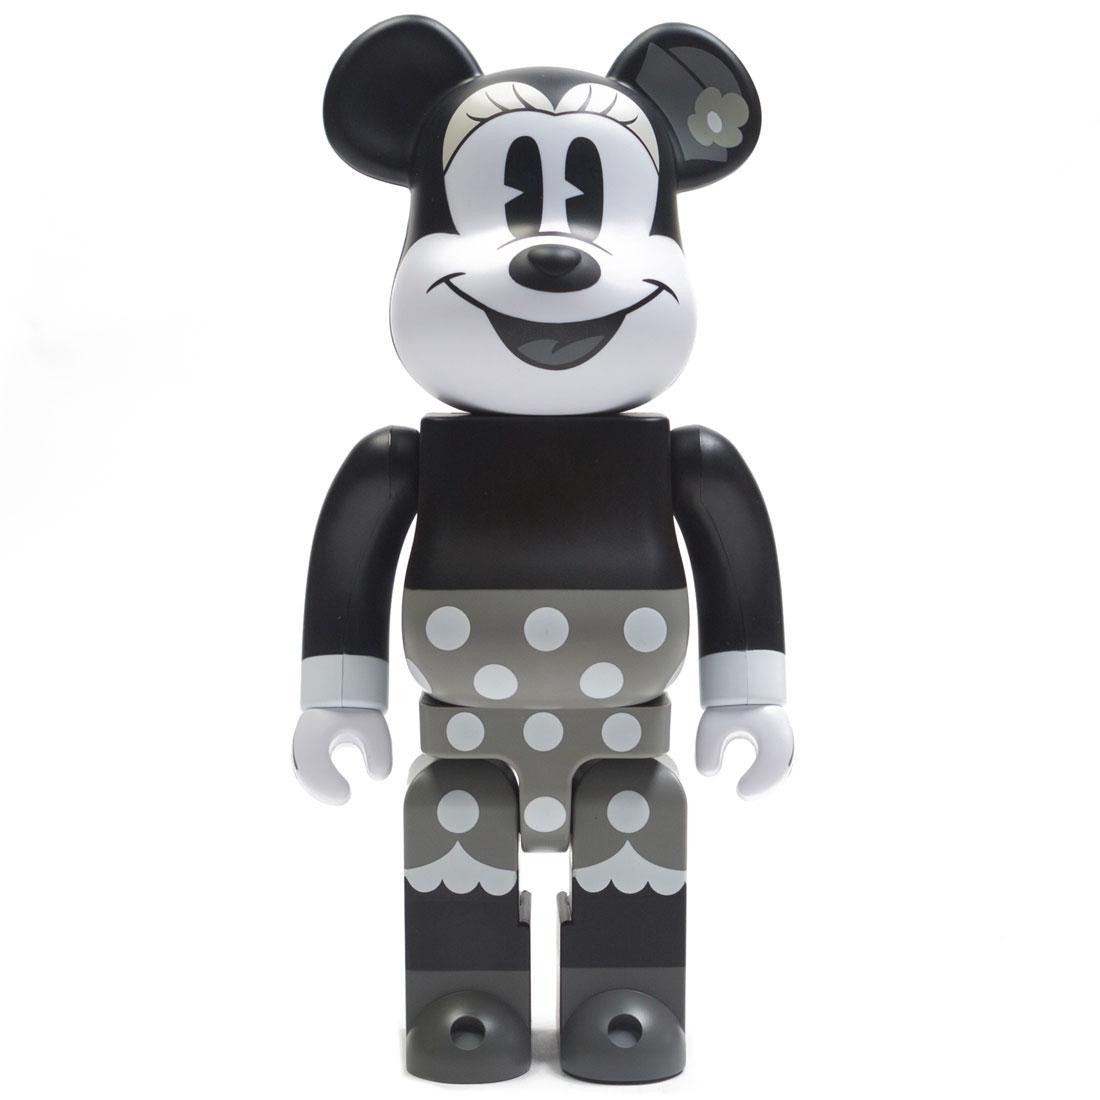 Medicom Disney Minnie Mouse Black And White Ver 400% Bearbrick Figure (black / white)